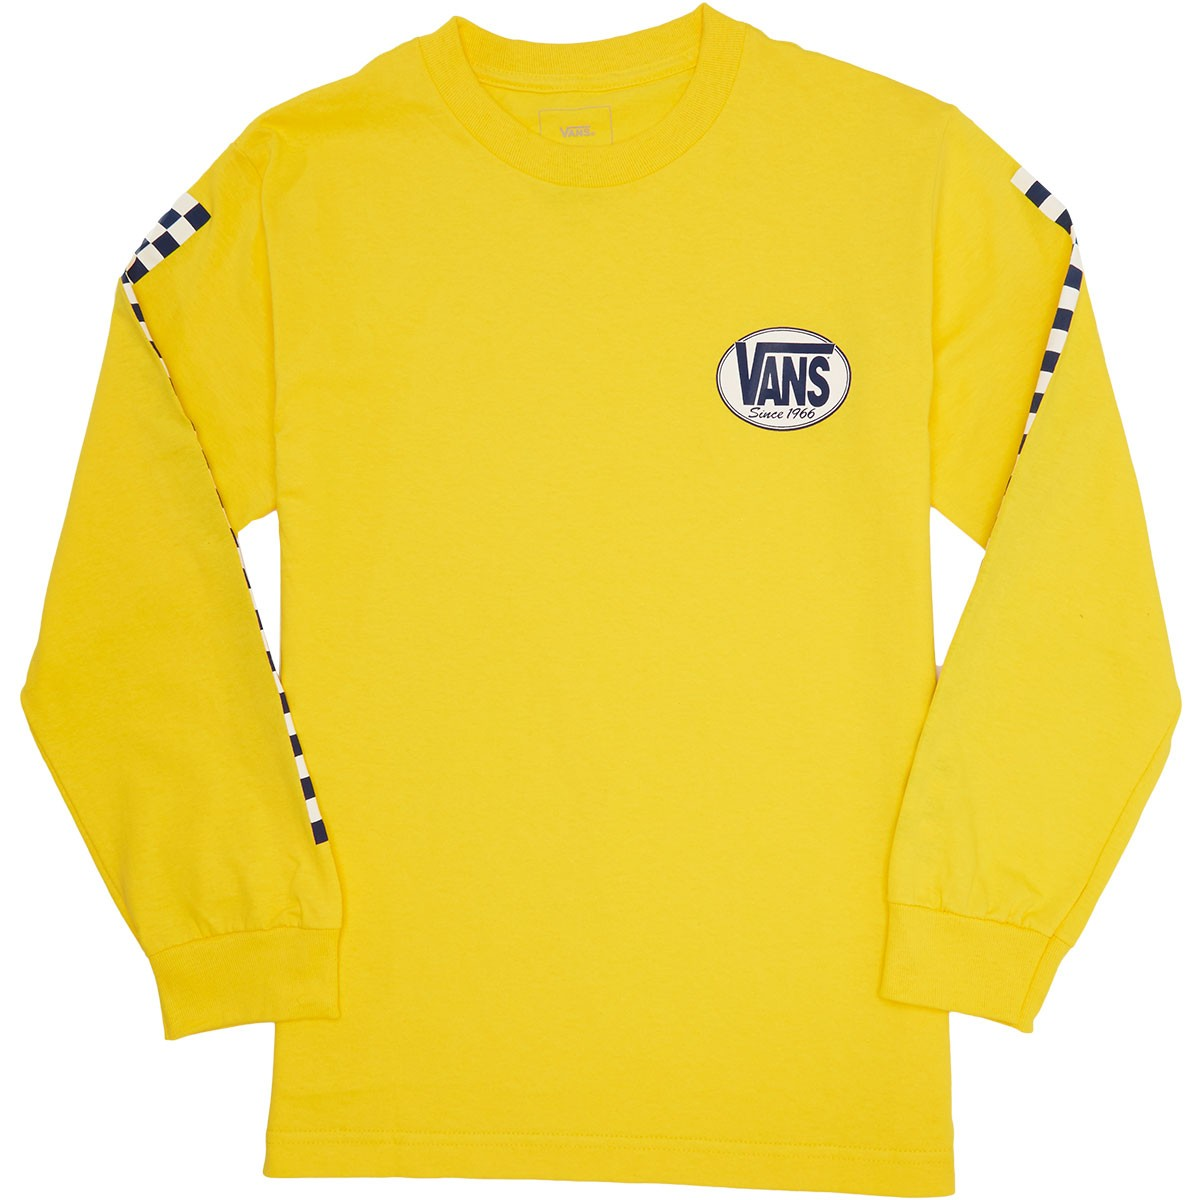 vans t shirt long sleeve